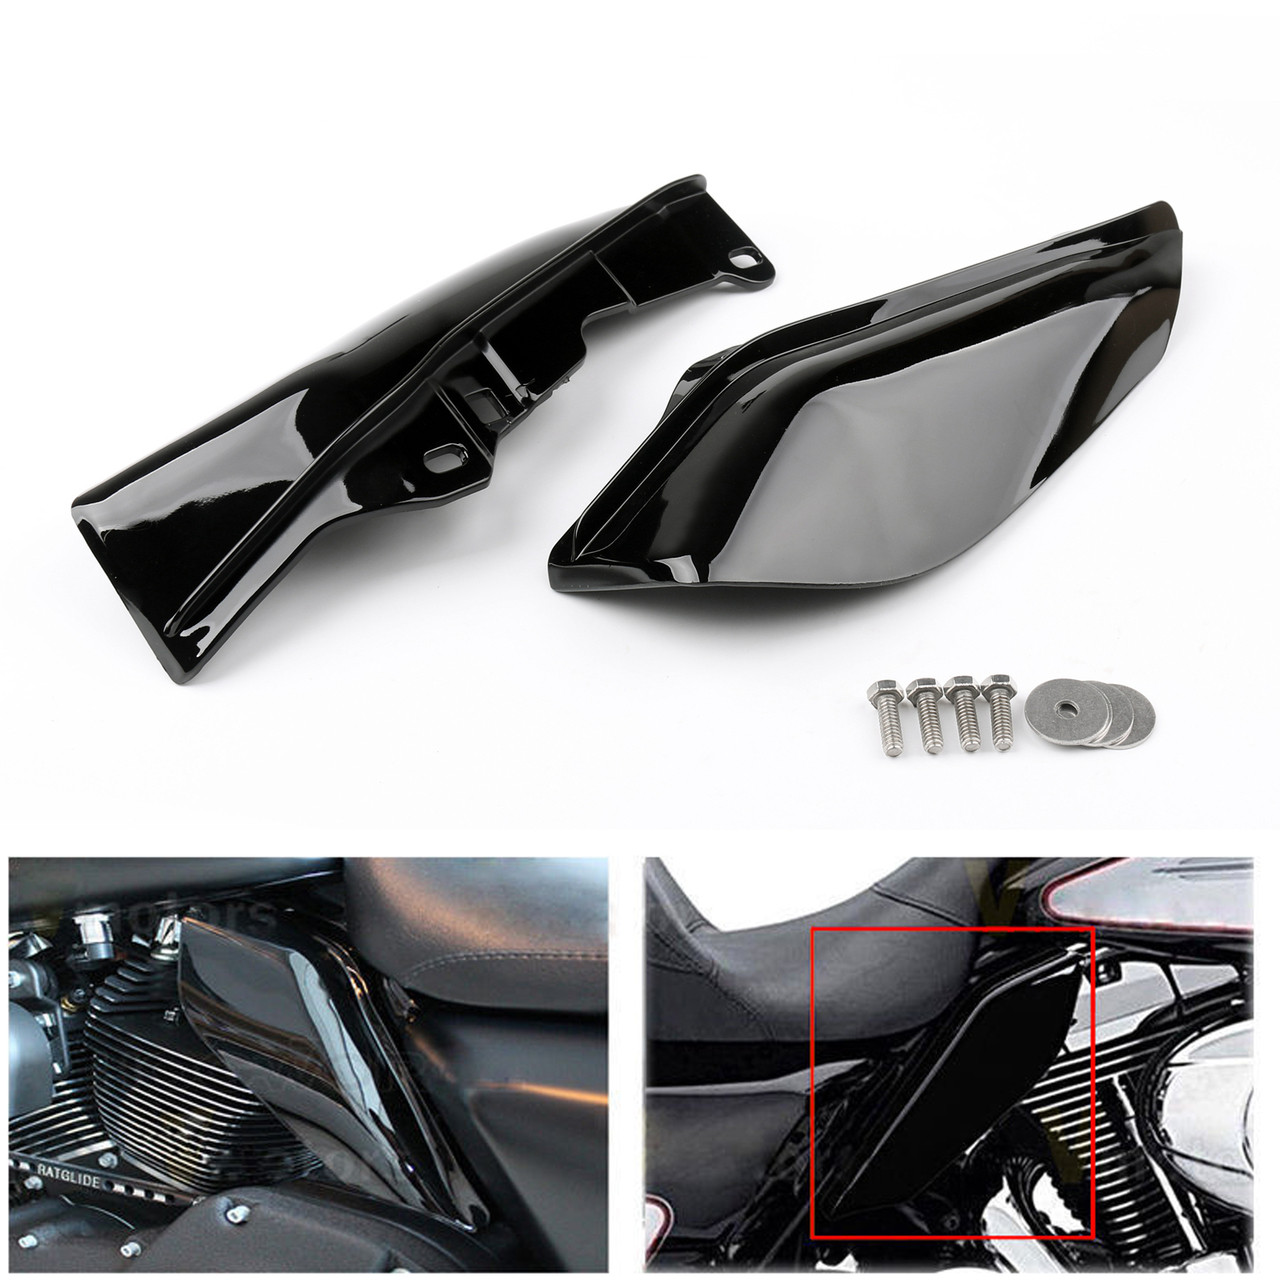 Mid-Frame Air Heat Deflector Trim Accents Shield For Harley Touring Electra Glide 09-13